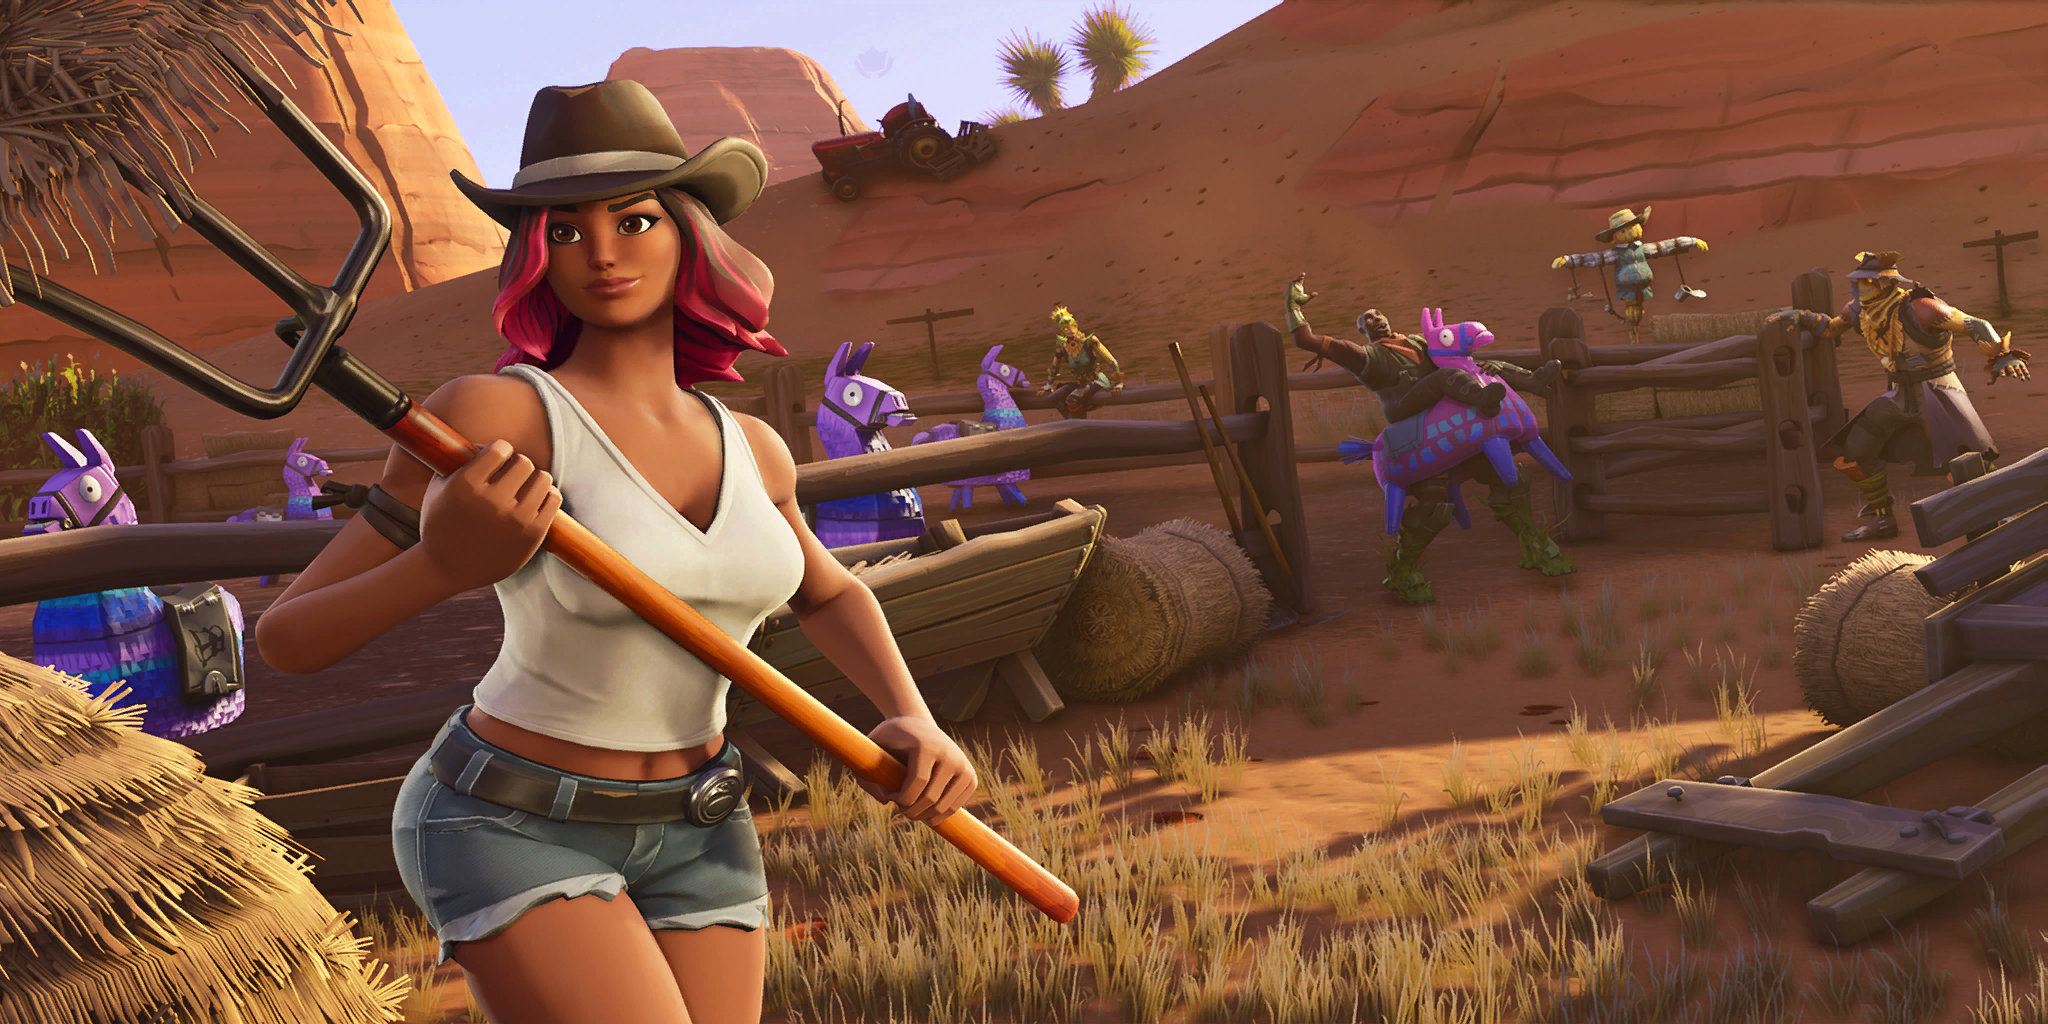 Fortnite Degrade Weapon The Highlights Of The Competitive Fortnite Ama